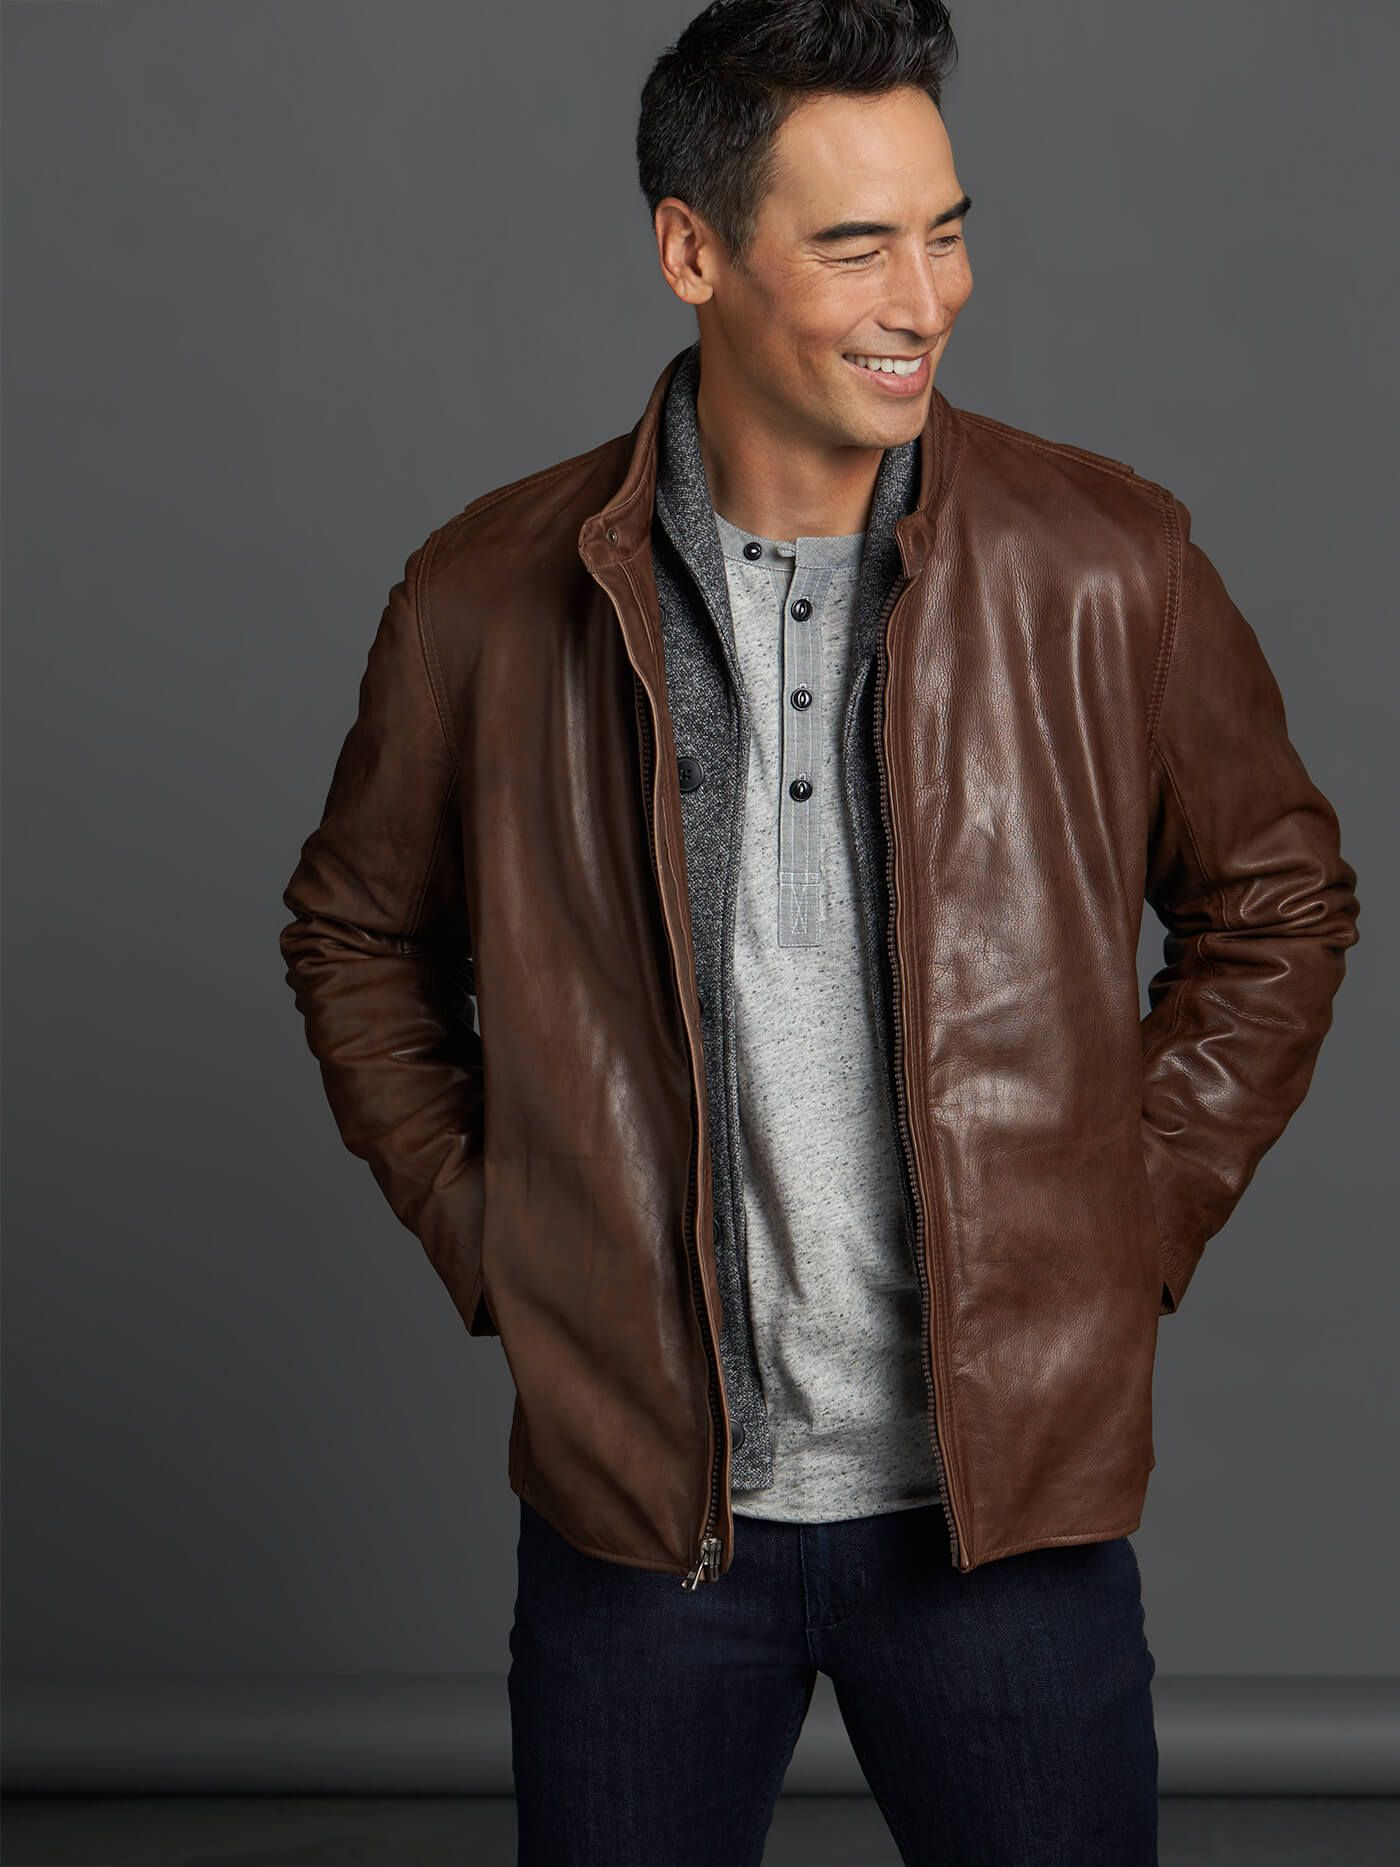 4 Layering Tips To Keep You Warm This Winter Stitch Fix Men Boating Outfit Stitch Fix Men Mens Outfits [ 1867 x 1400 Pixel ]